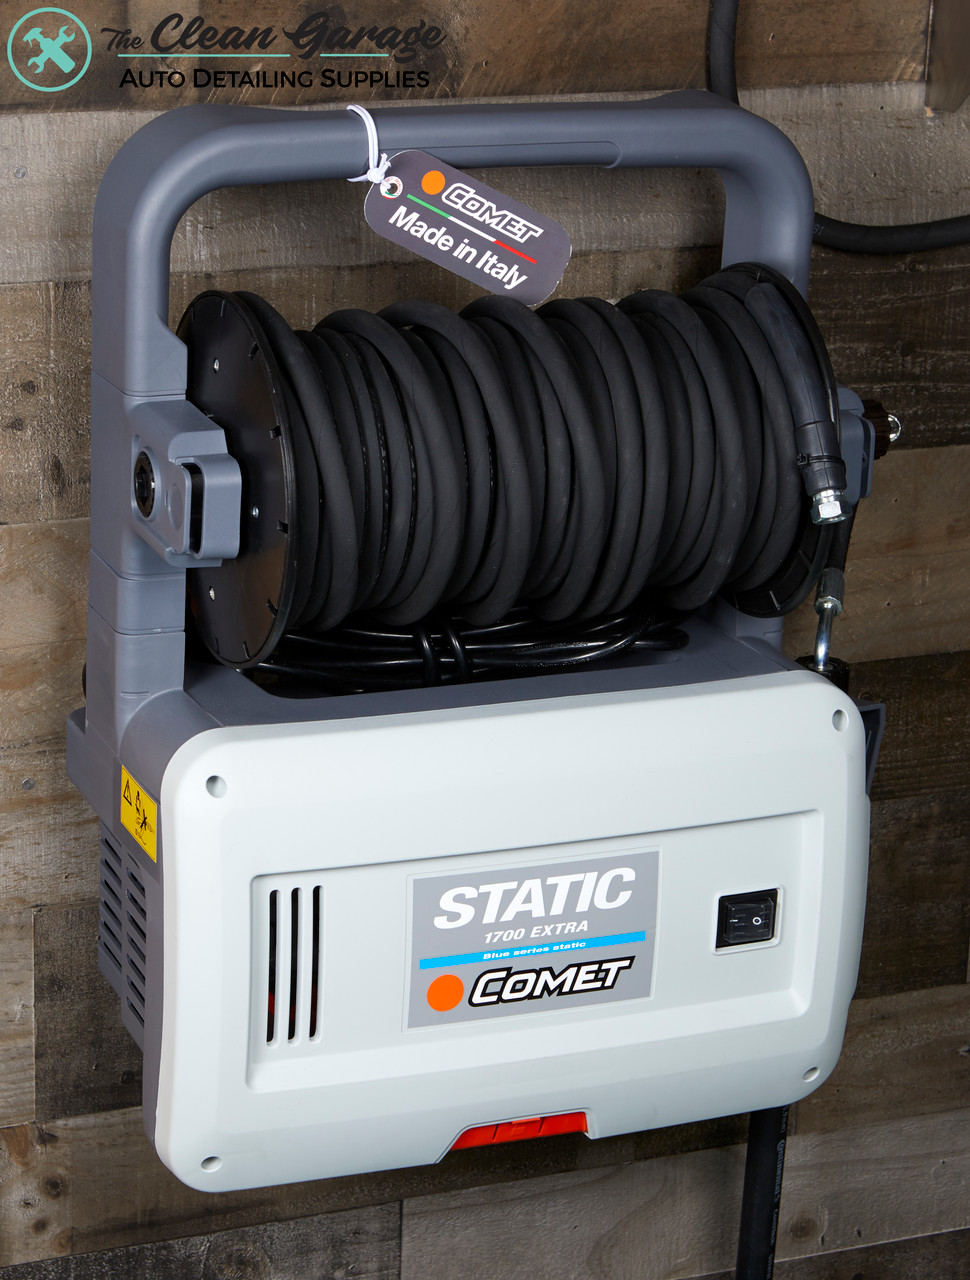 Comet Static 1700 Electric Wall Mount Pressure Washer | 2.2 GPM